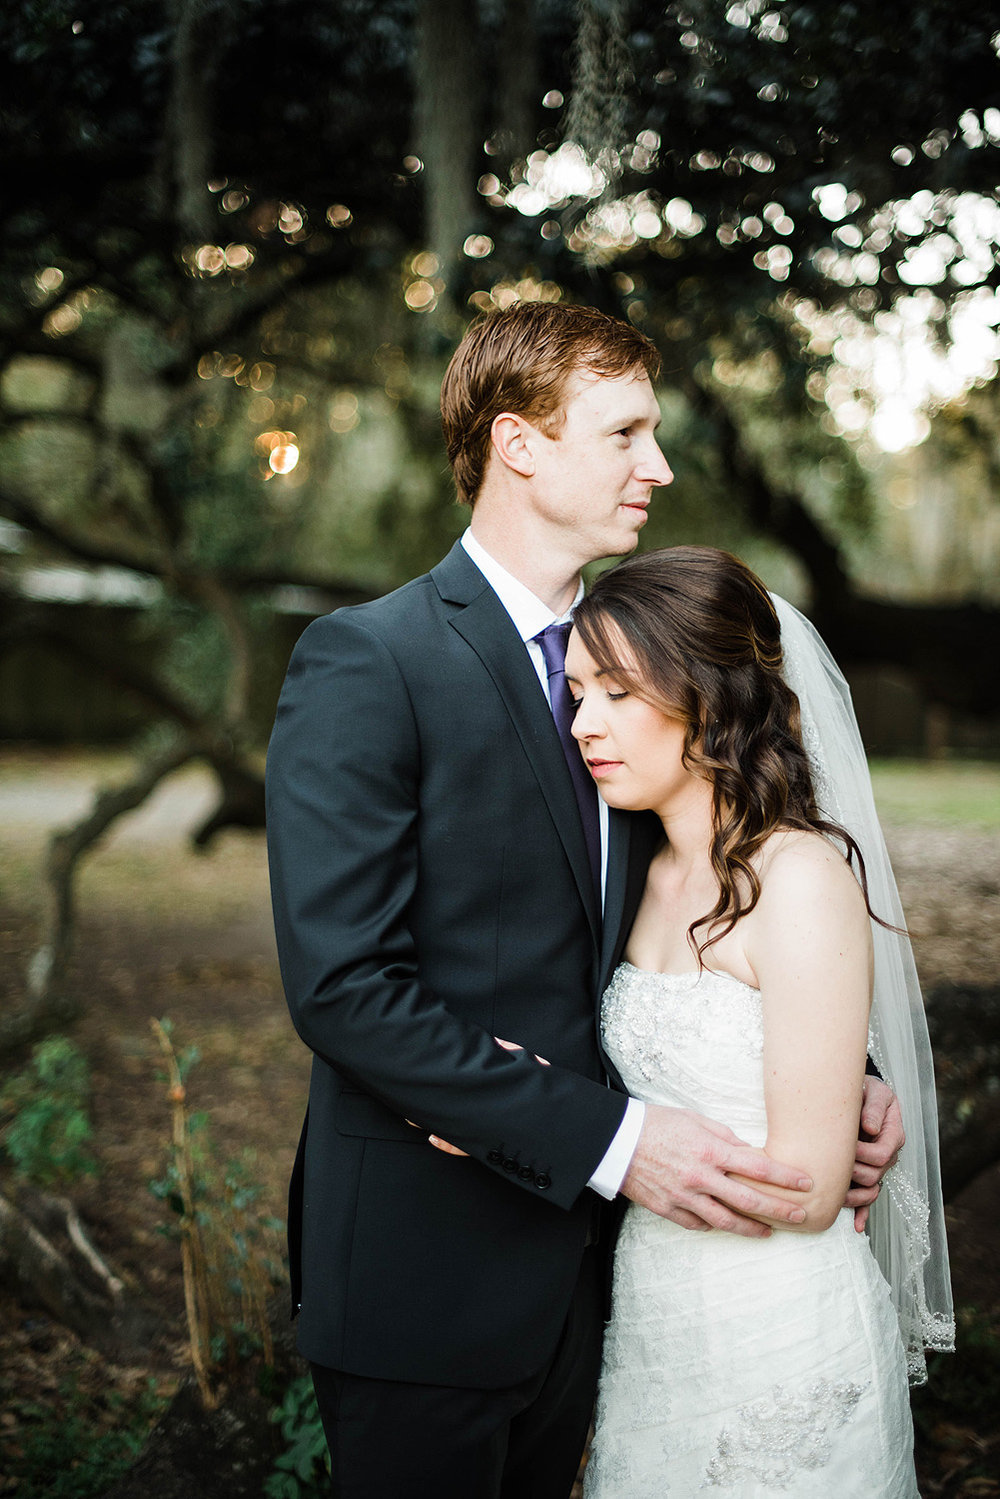 Lisa + Rock-Tree-of-Life-Audubon-Park-New-Orleans-Elopement-Photos_Online_0232.jpg